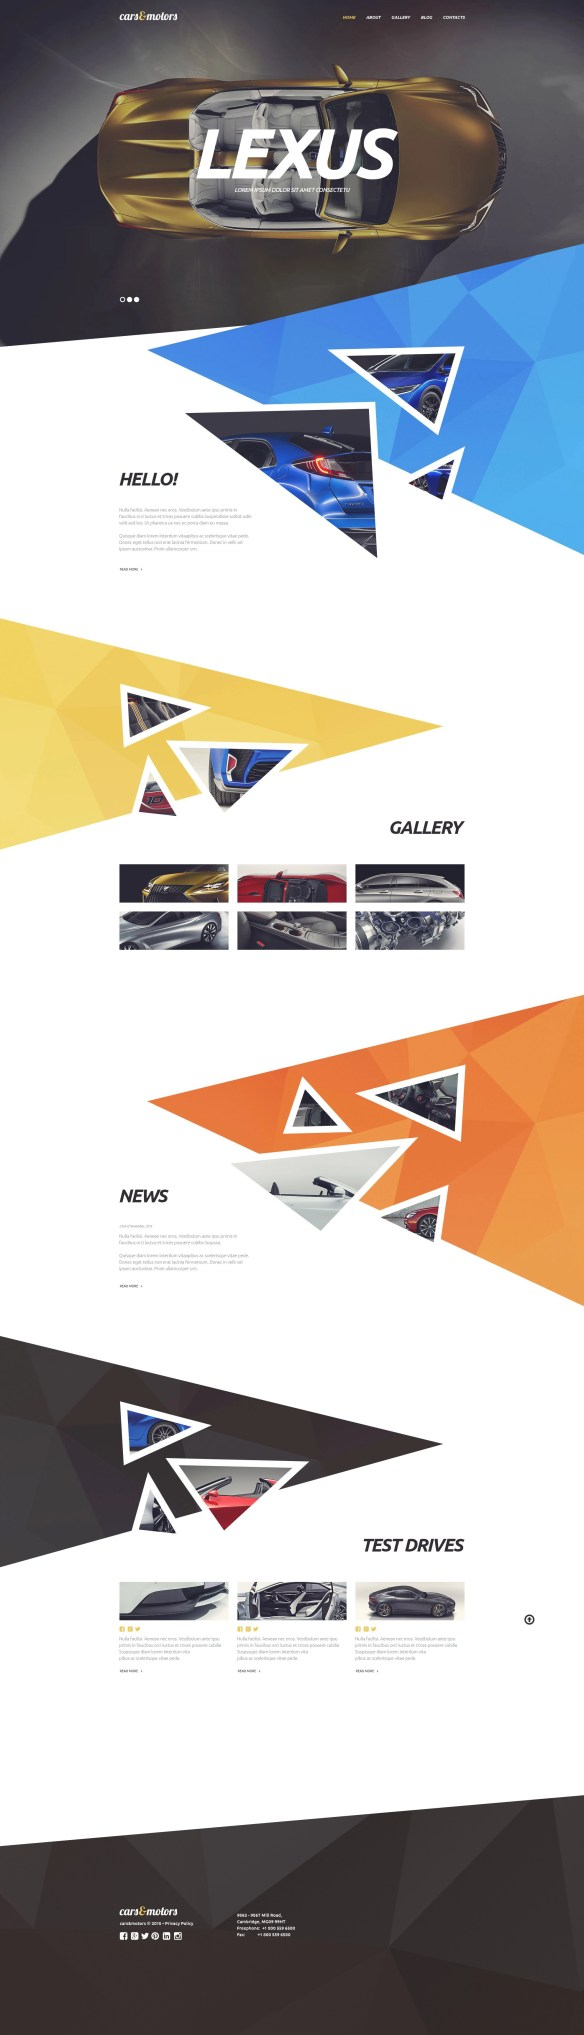 Creative Geometric Design WordPress Theme